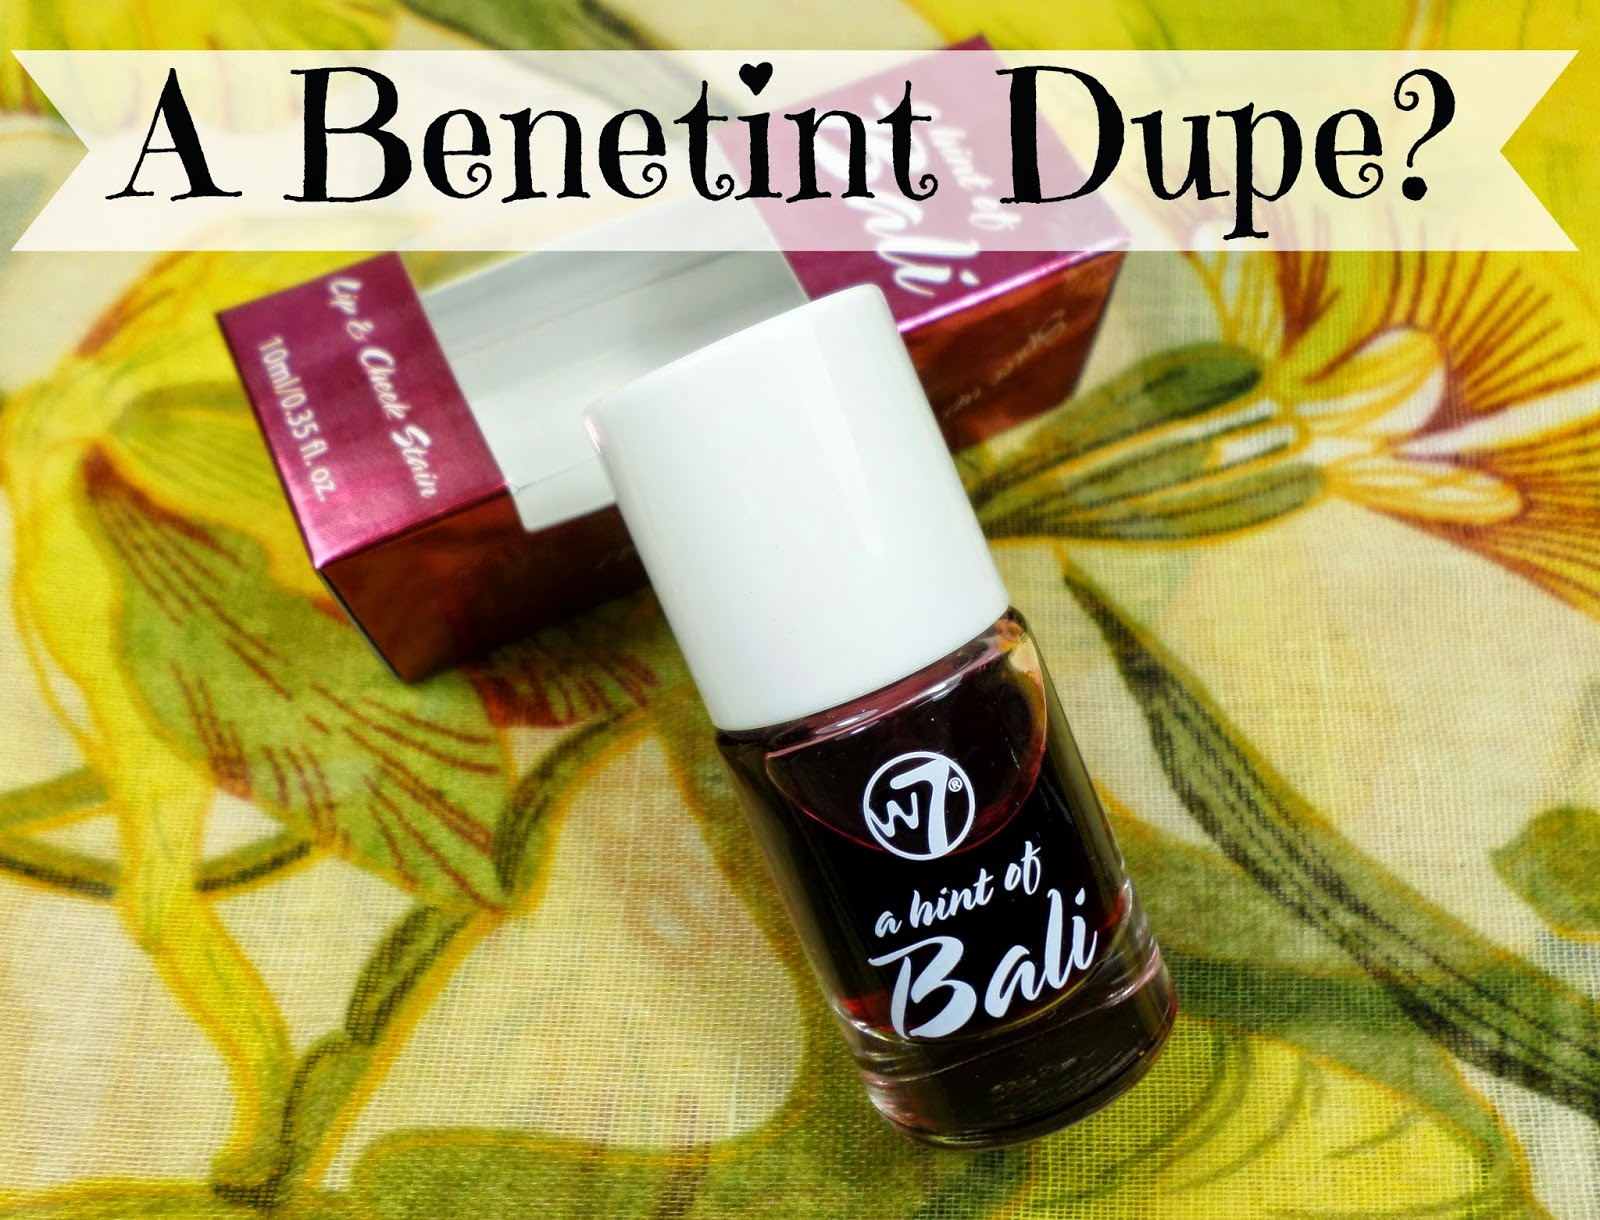 W7 A Hint Of Bali Lip & Cheek Stain Review - A Benefit Benetint Makeup Dupe